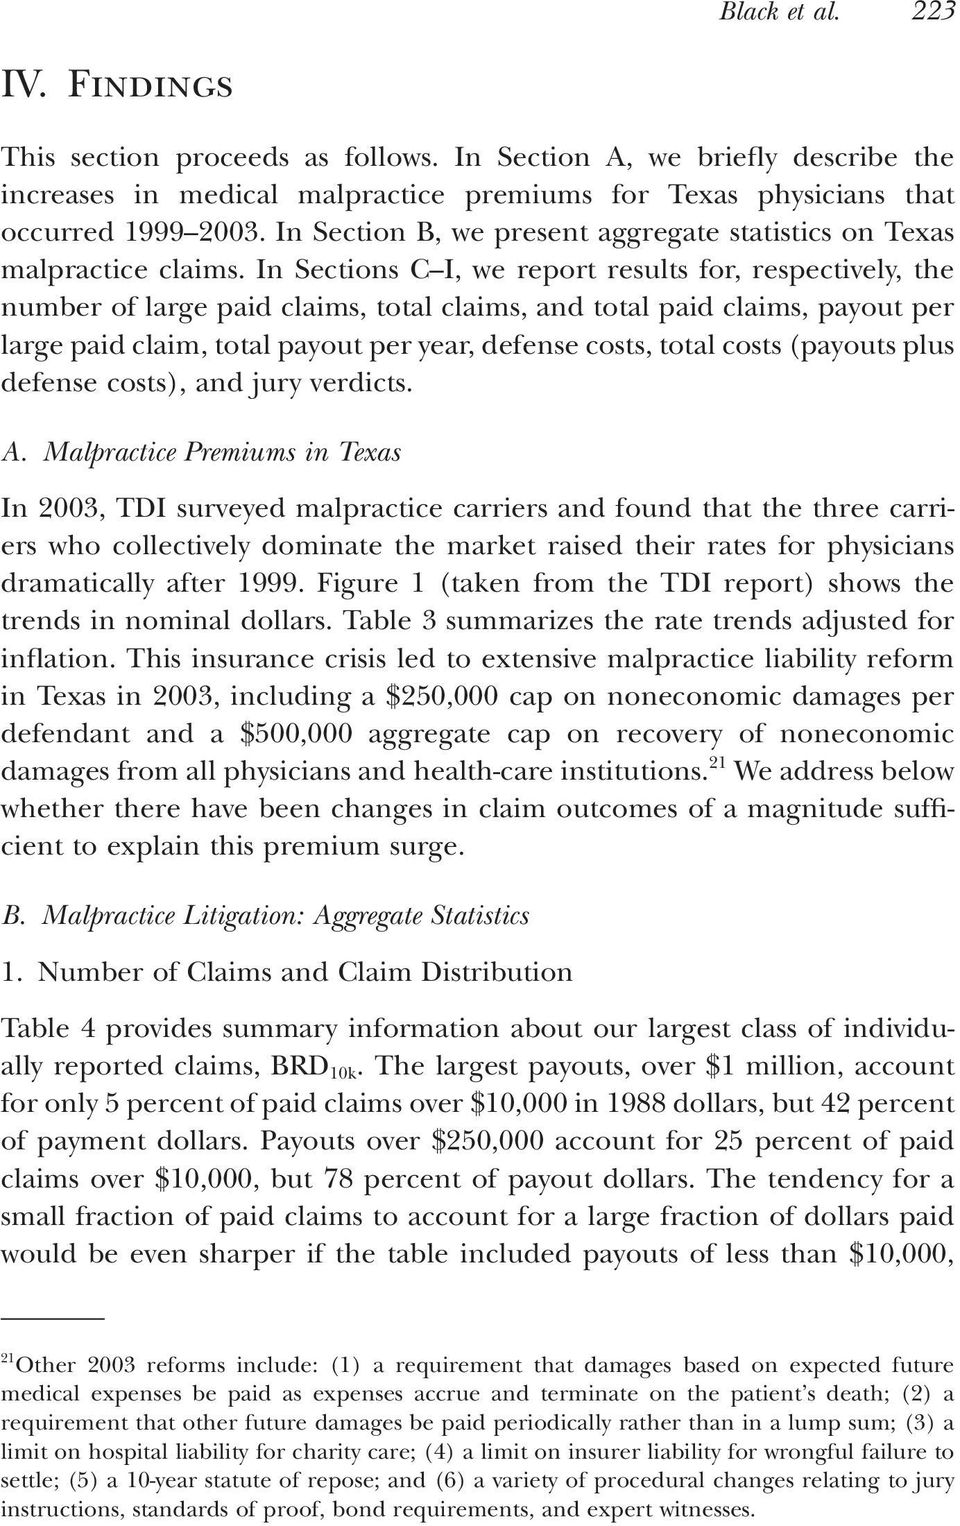 In Sections C I, we report results for, respectively, the number of large paid claims, total claims, and total paid claims, payout per large paid claim, total payout per year, defense costs, total